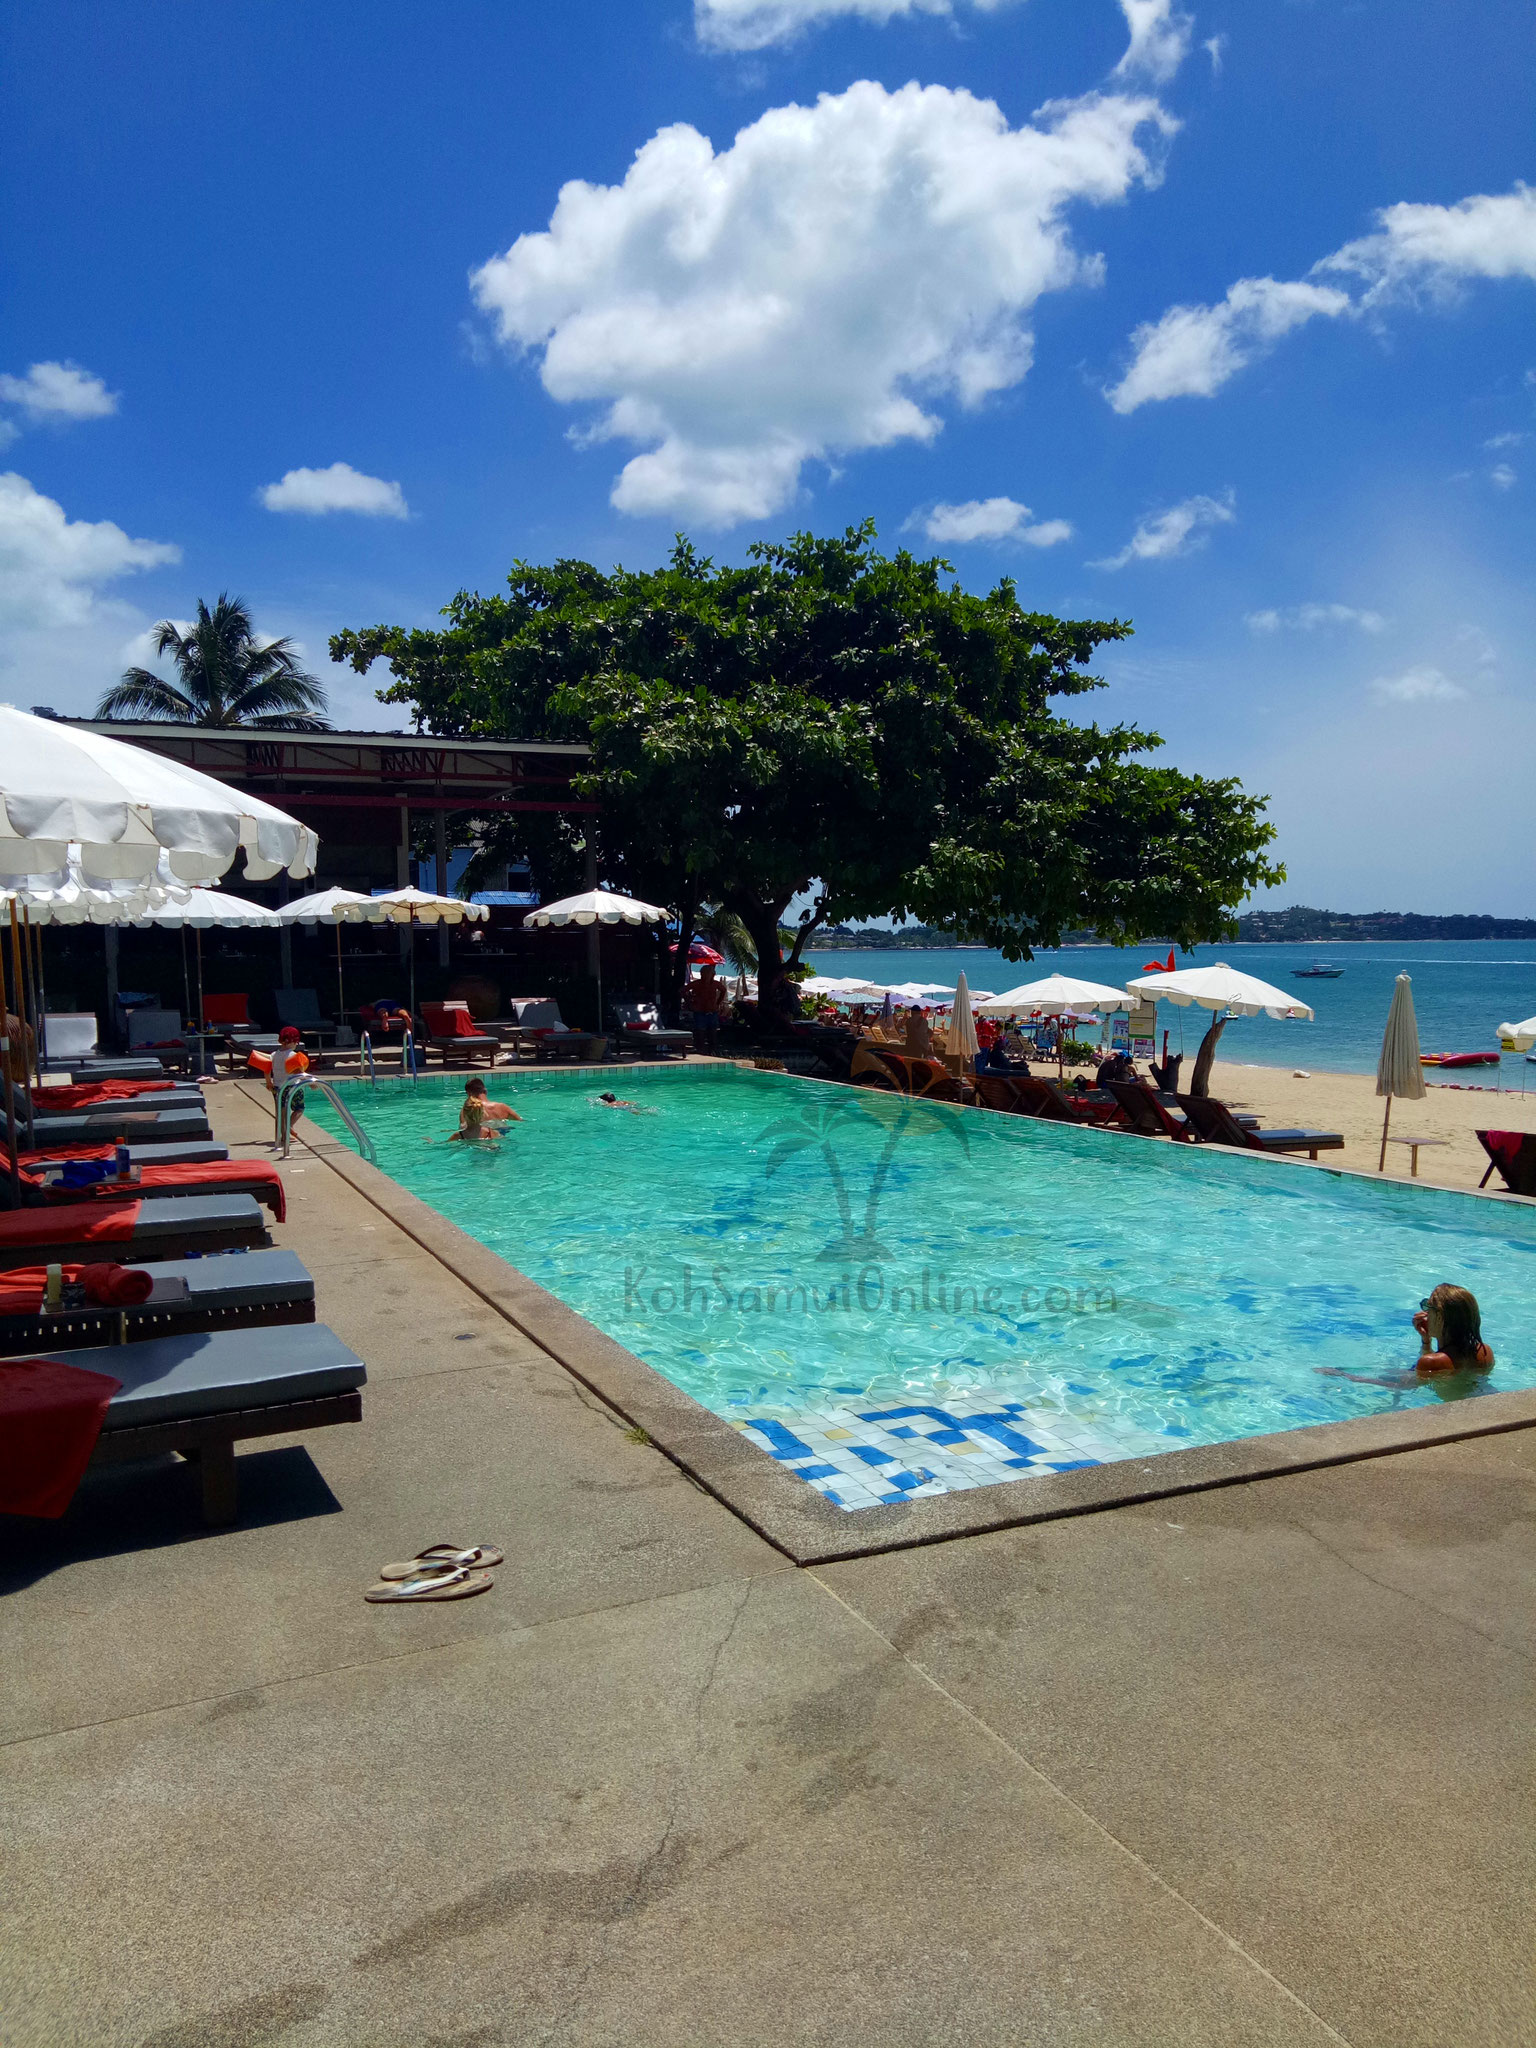 pictures of Koh Samui